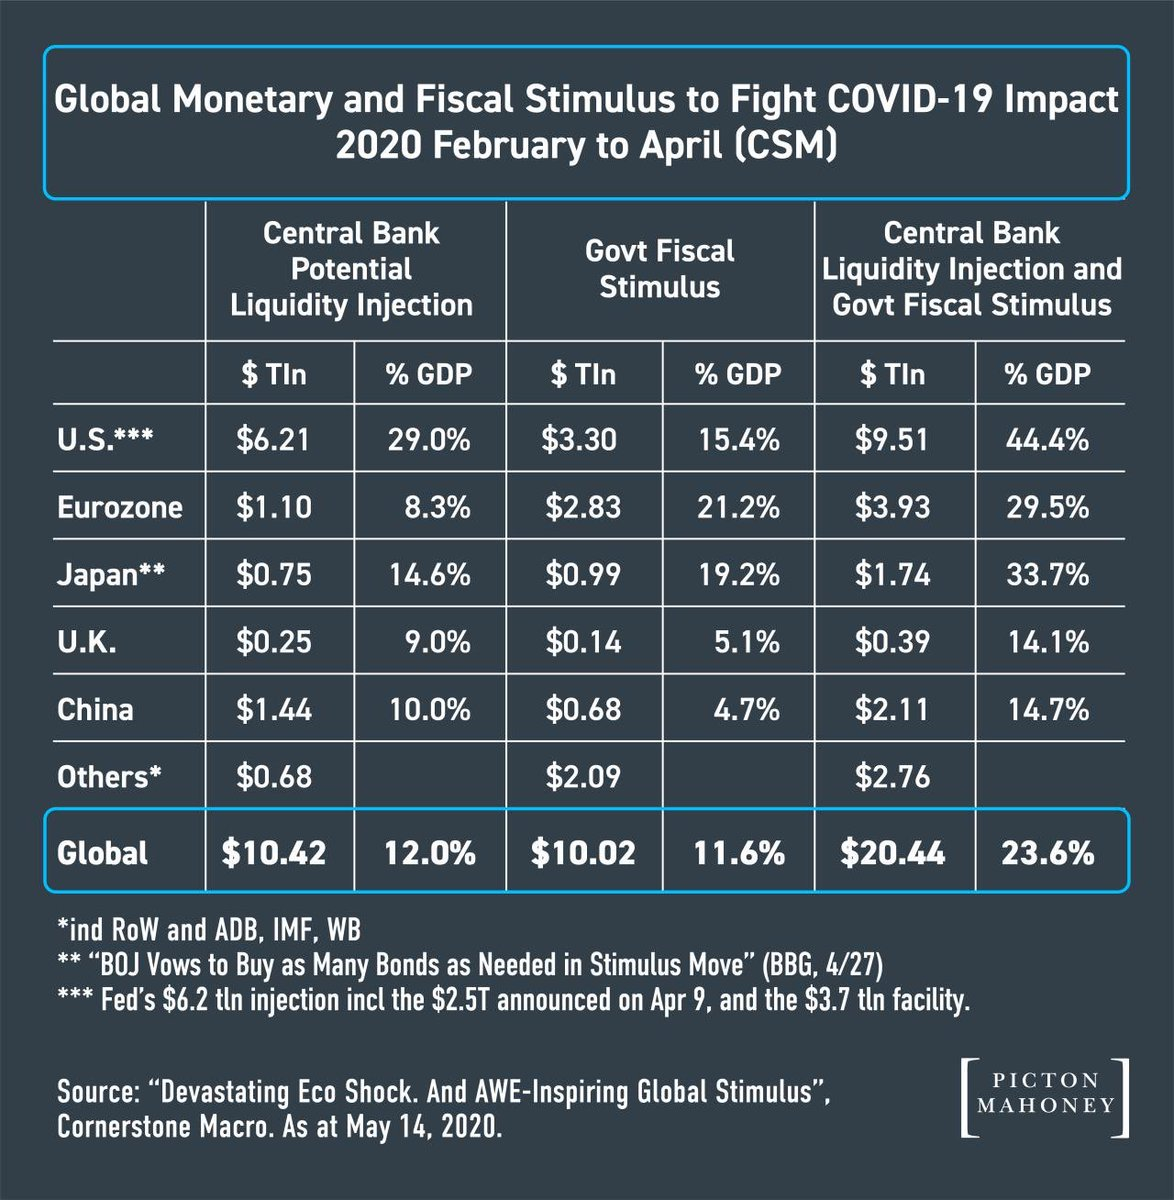 Global Monetary and Fiscal Stimulus to Fight Covid-19